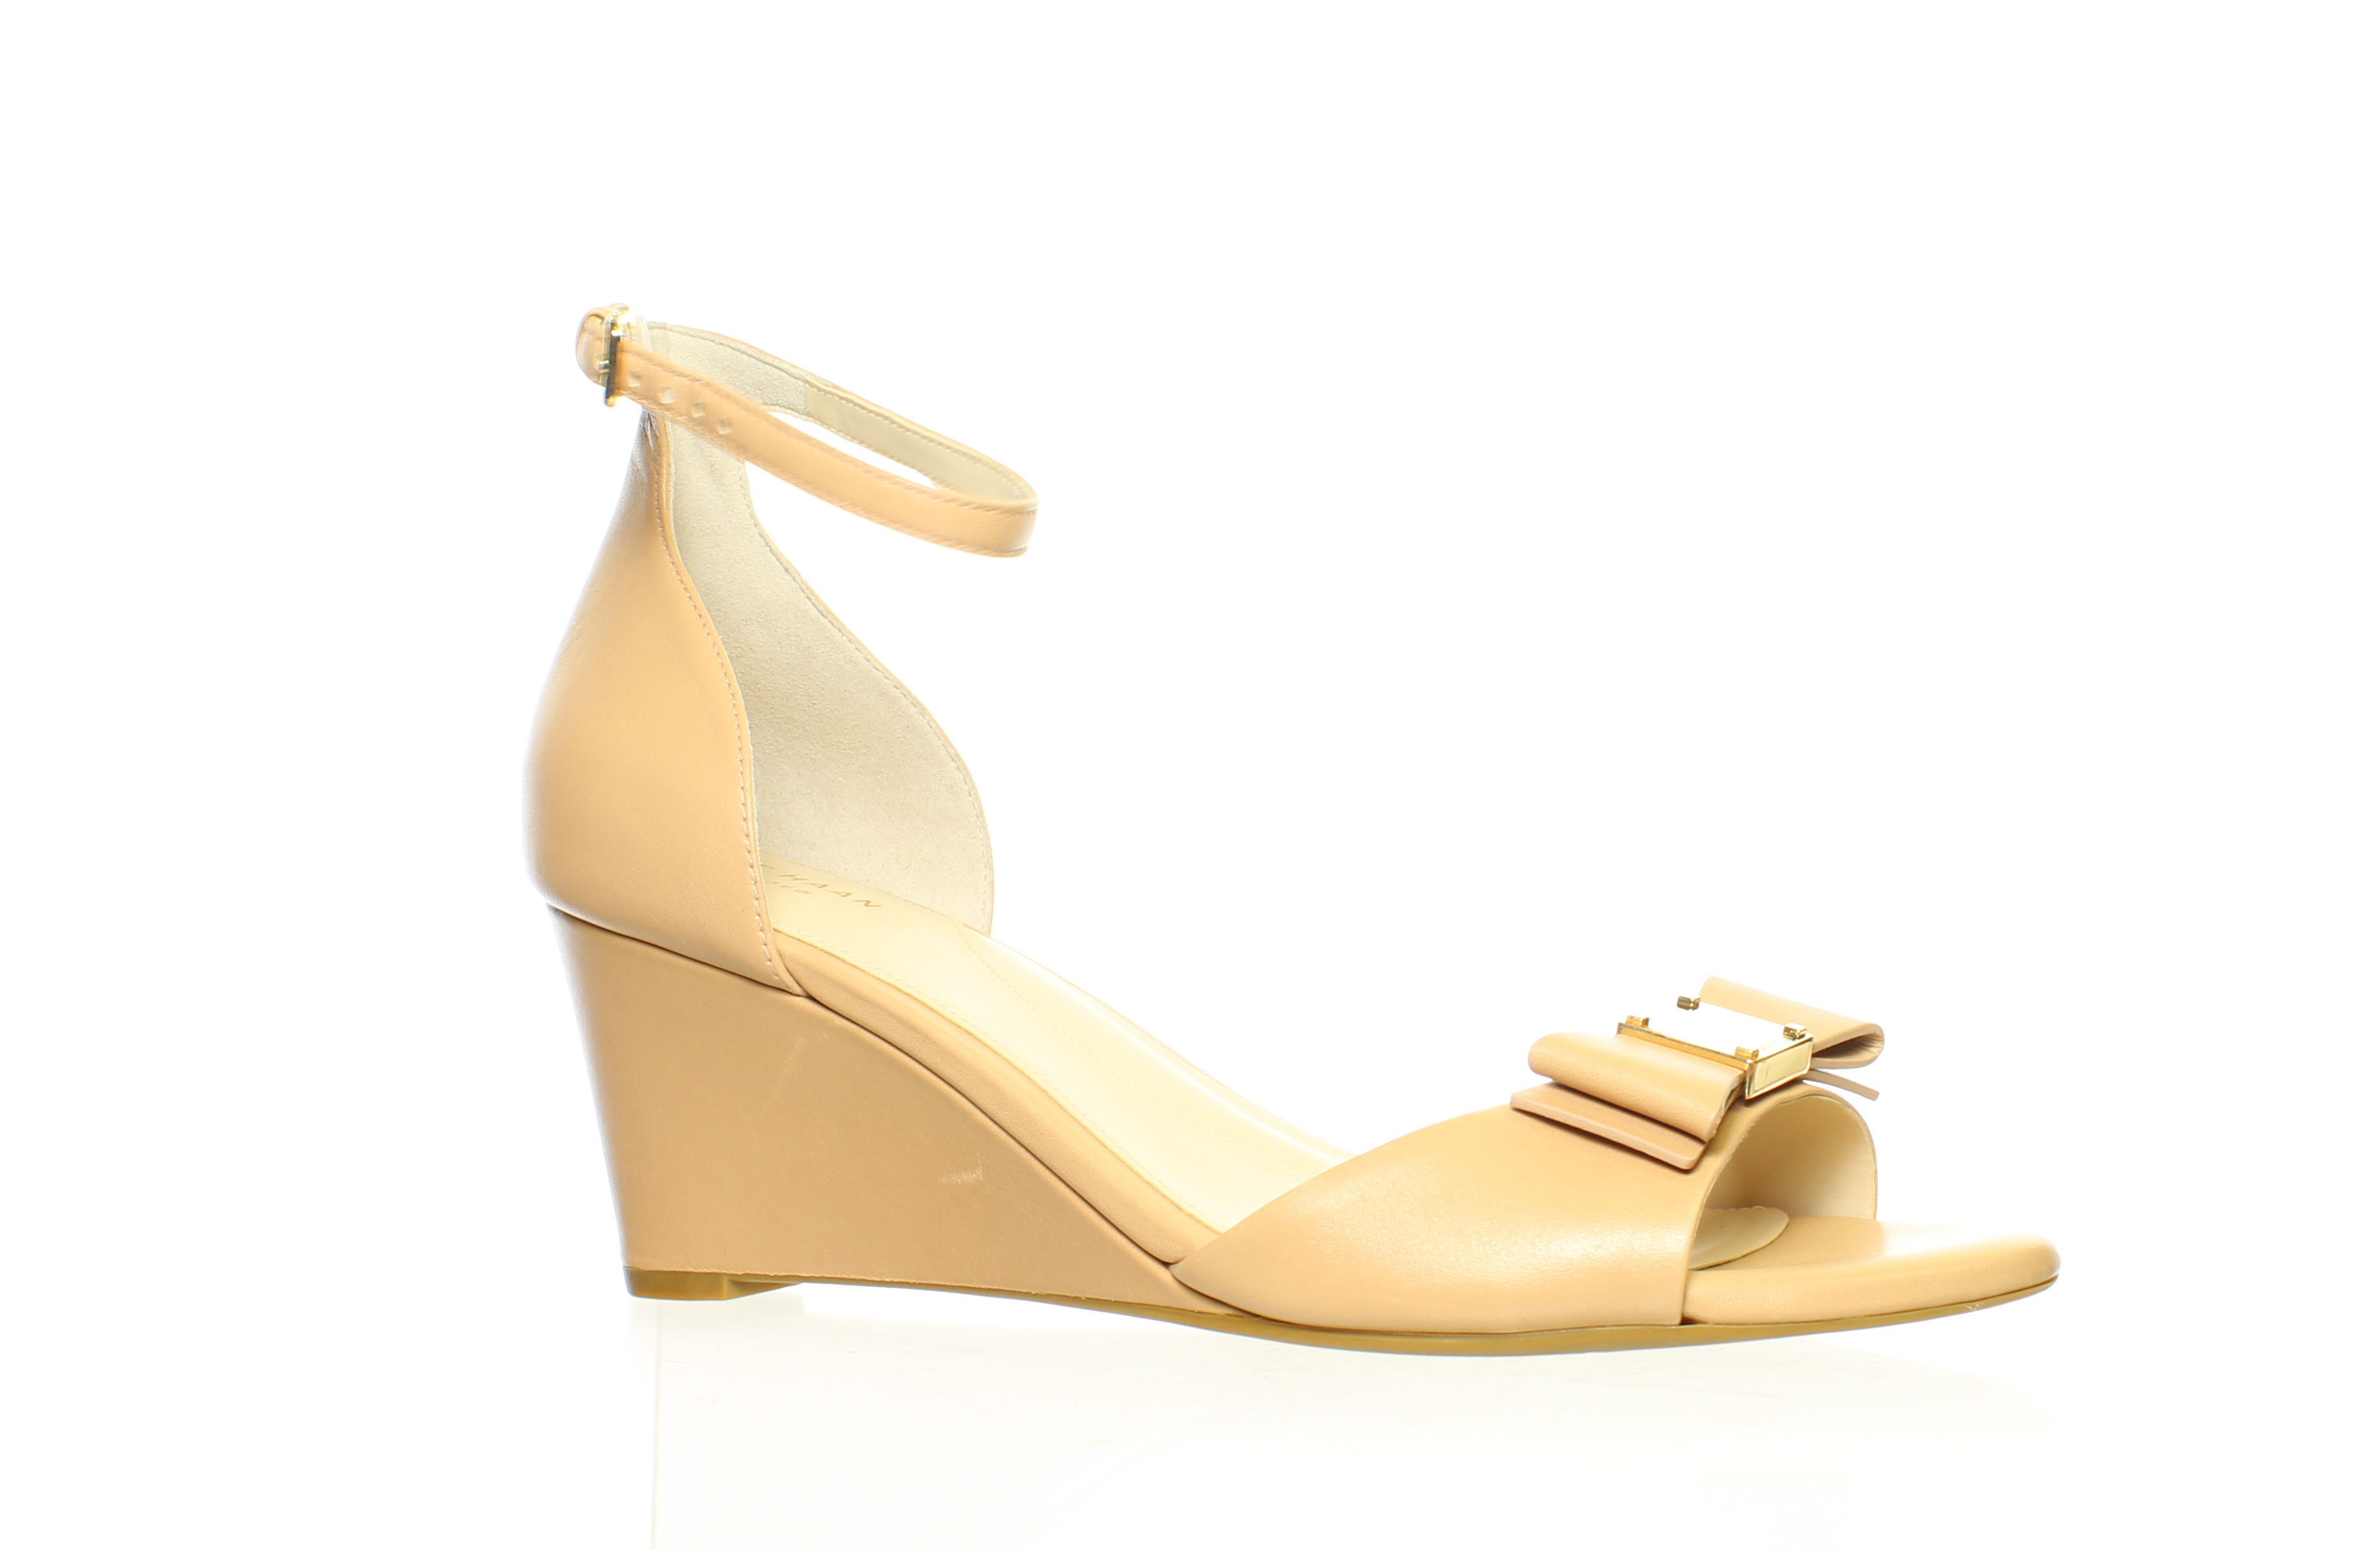 Cole Haan Womens Tali Soft Bow Ch Nude Leather Pumps Size